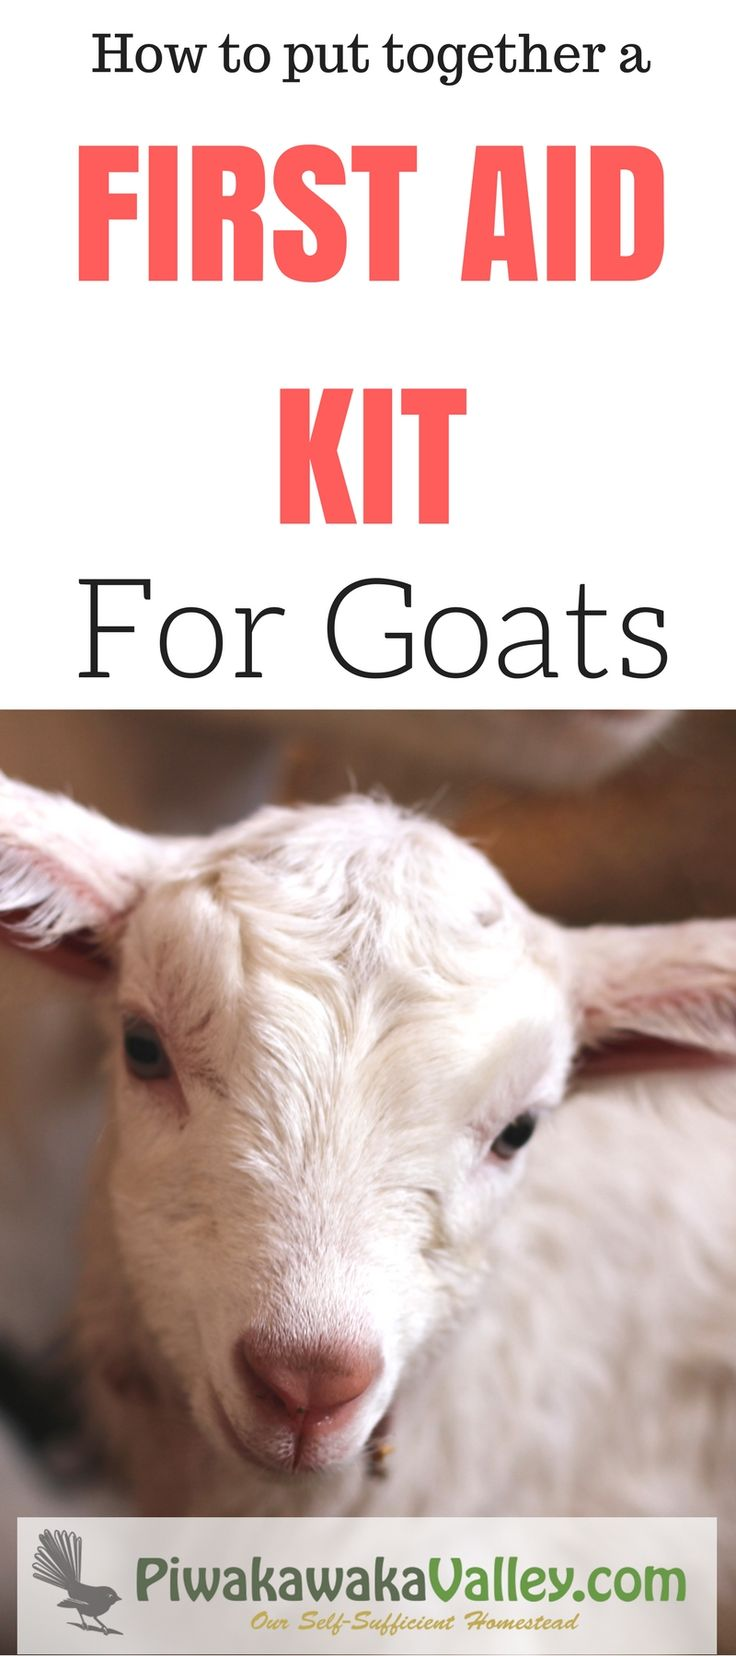 Do you have a first aid kit for your goats?